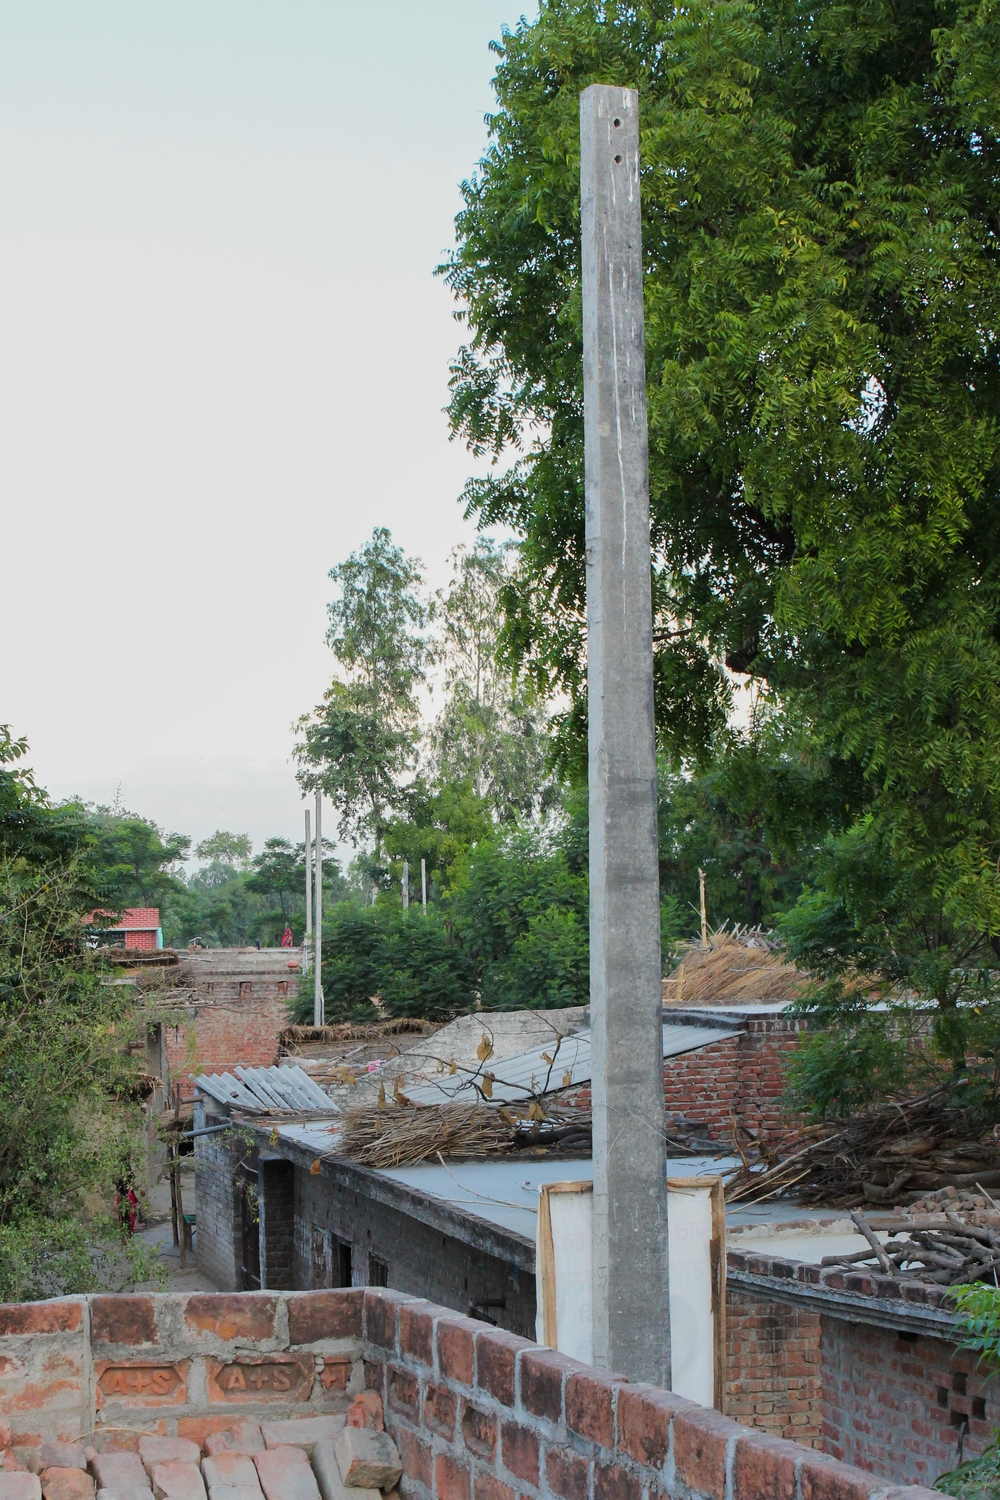 These concrete poles were set by the government to give light service to the village. They have no wires in them at all, and have been empty for over half a year, when they were installed.  This means that the faulty solar panels are the only source of electricity for this village.